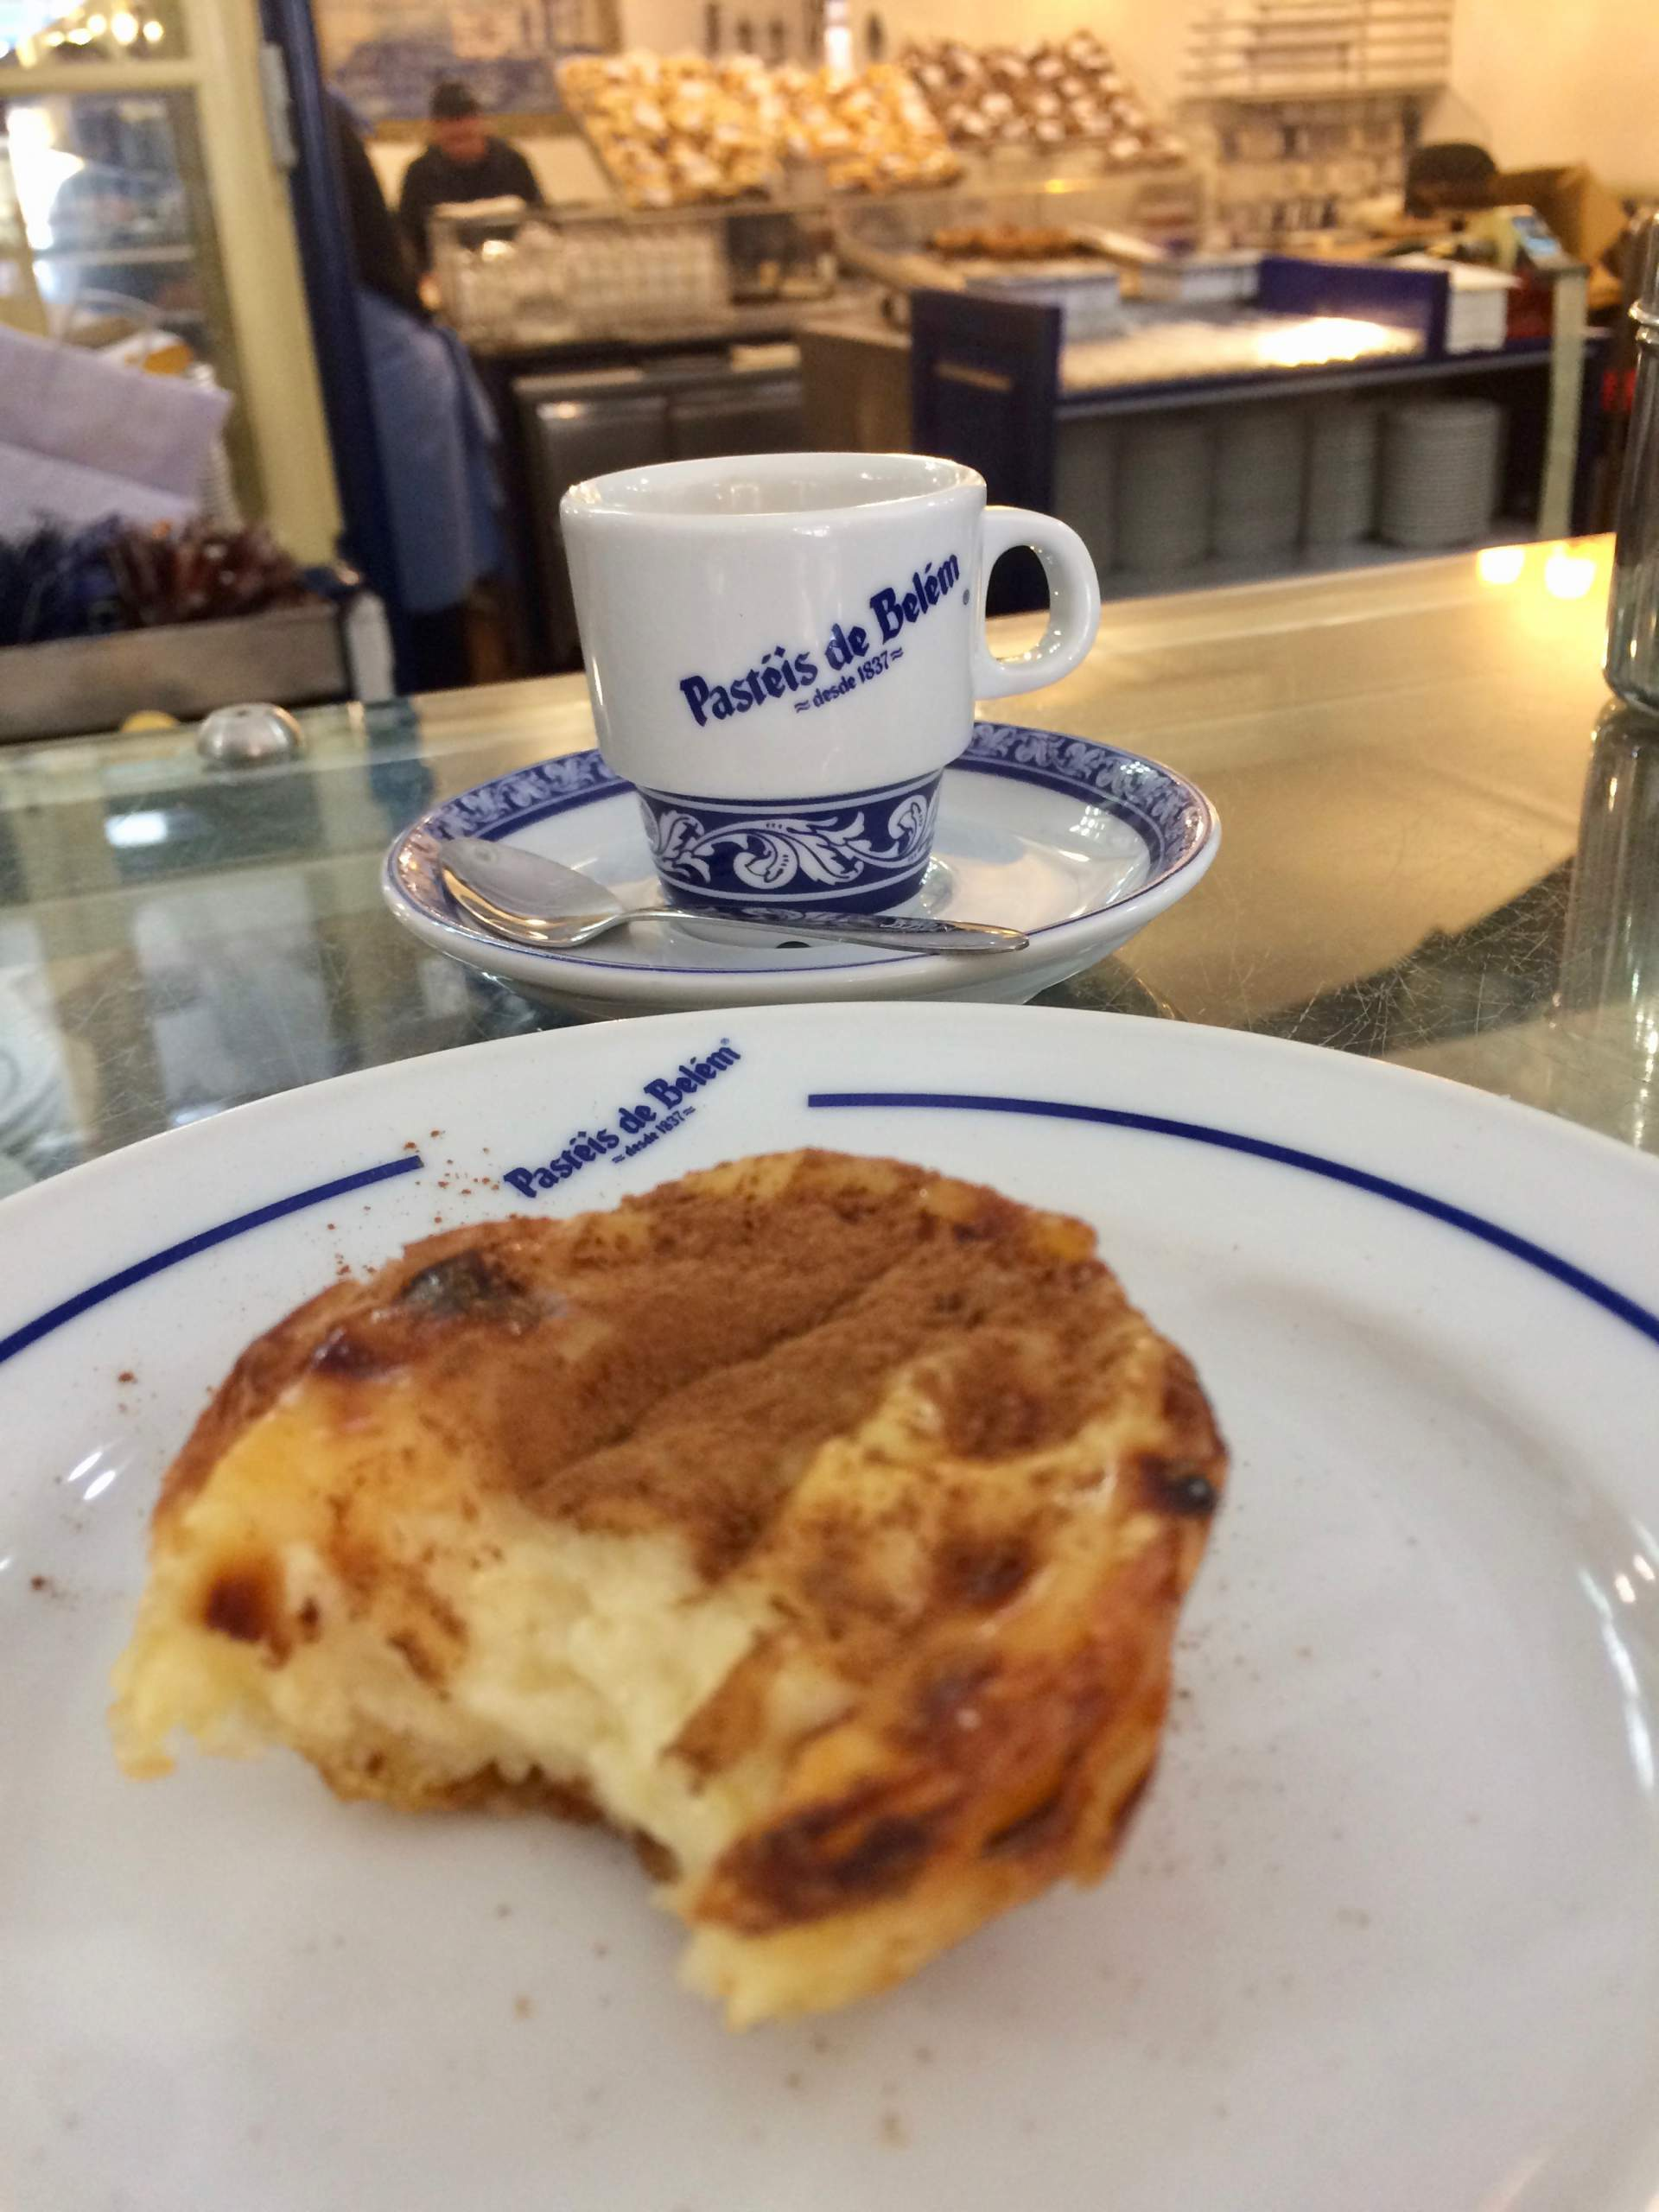 Pastel de Belém and coffee at one of the classic Lisbon coffee shops for coffee and pastries